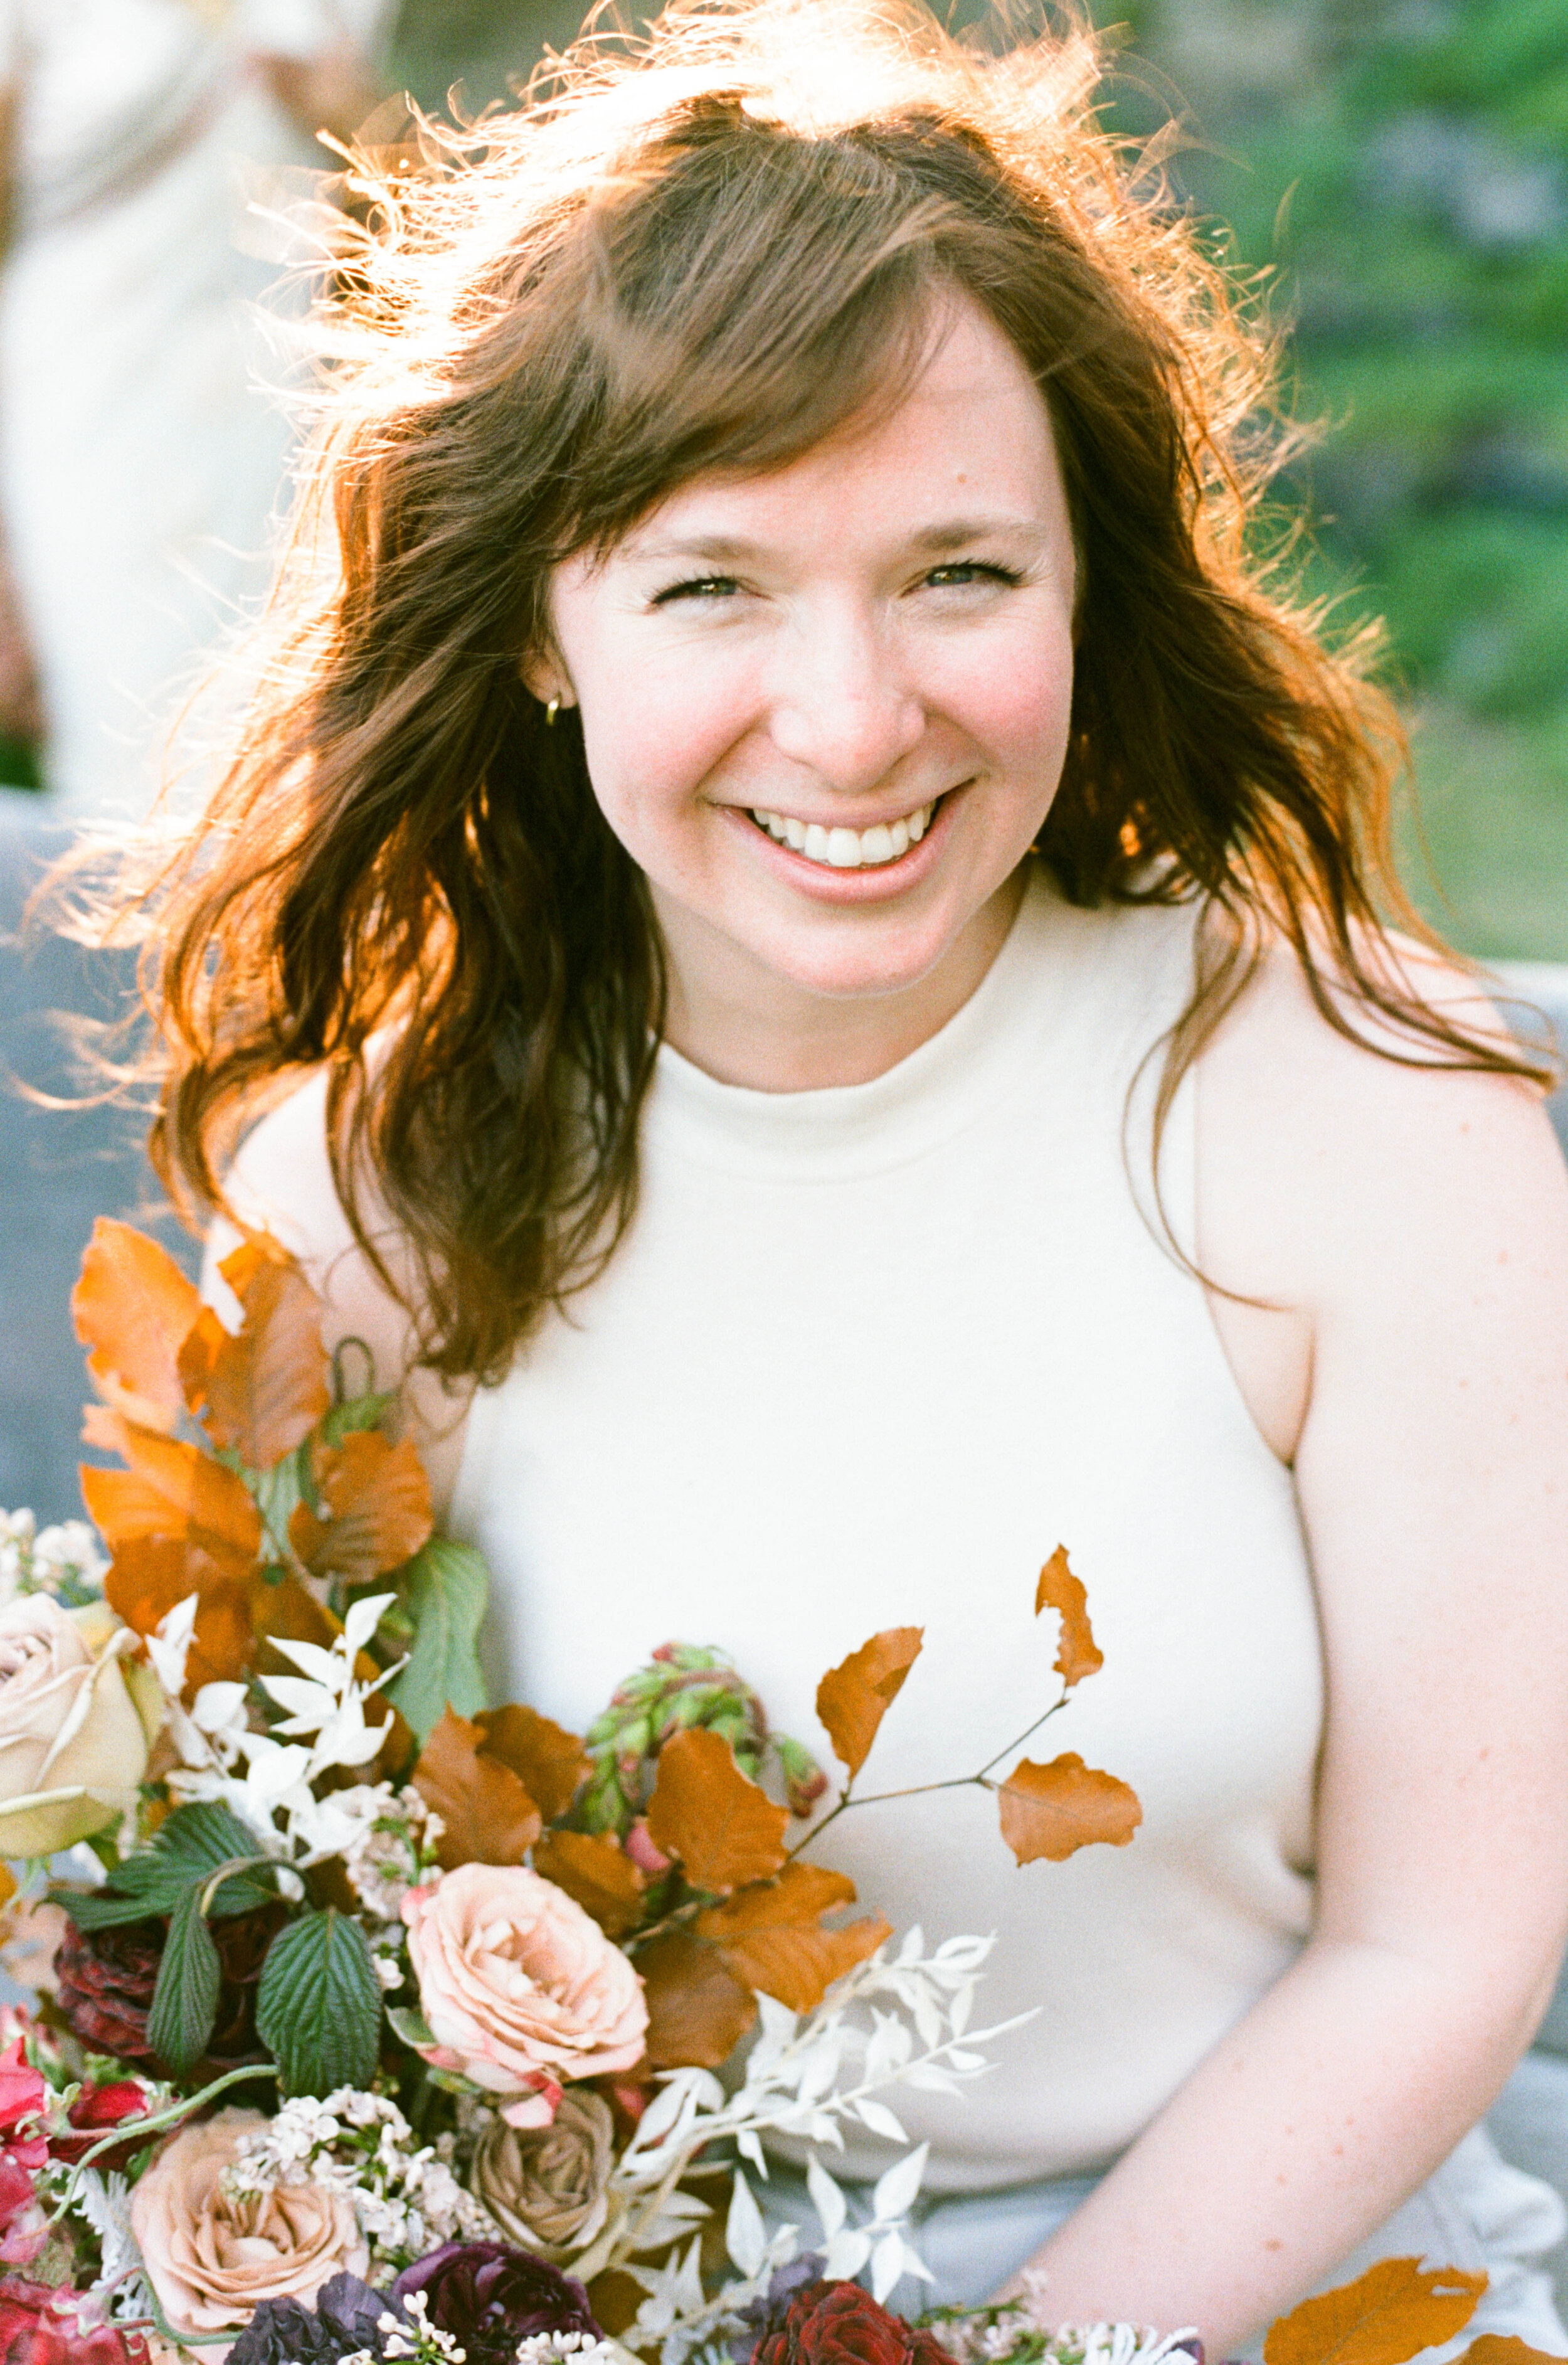 Mary Love Richardson of Rosemary & Finch Floral Design in Nashville, TN